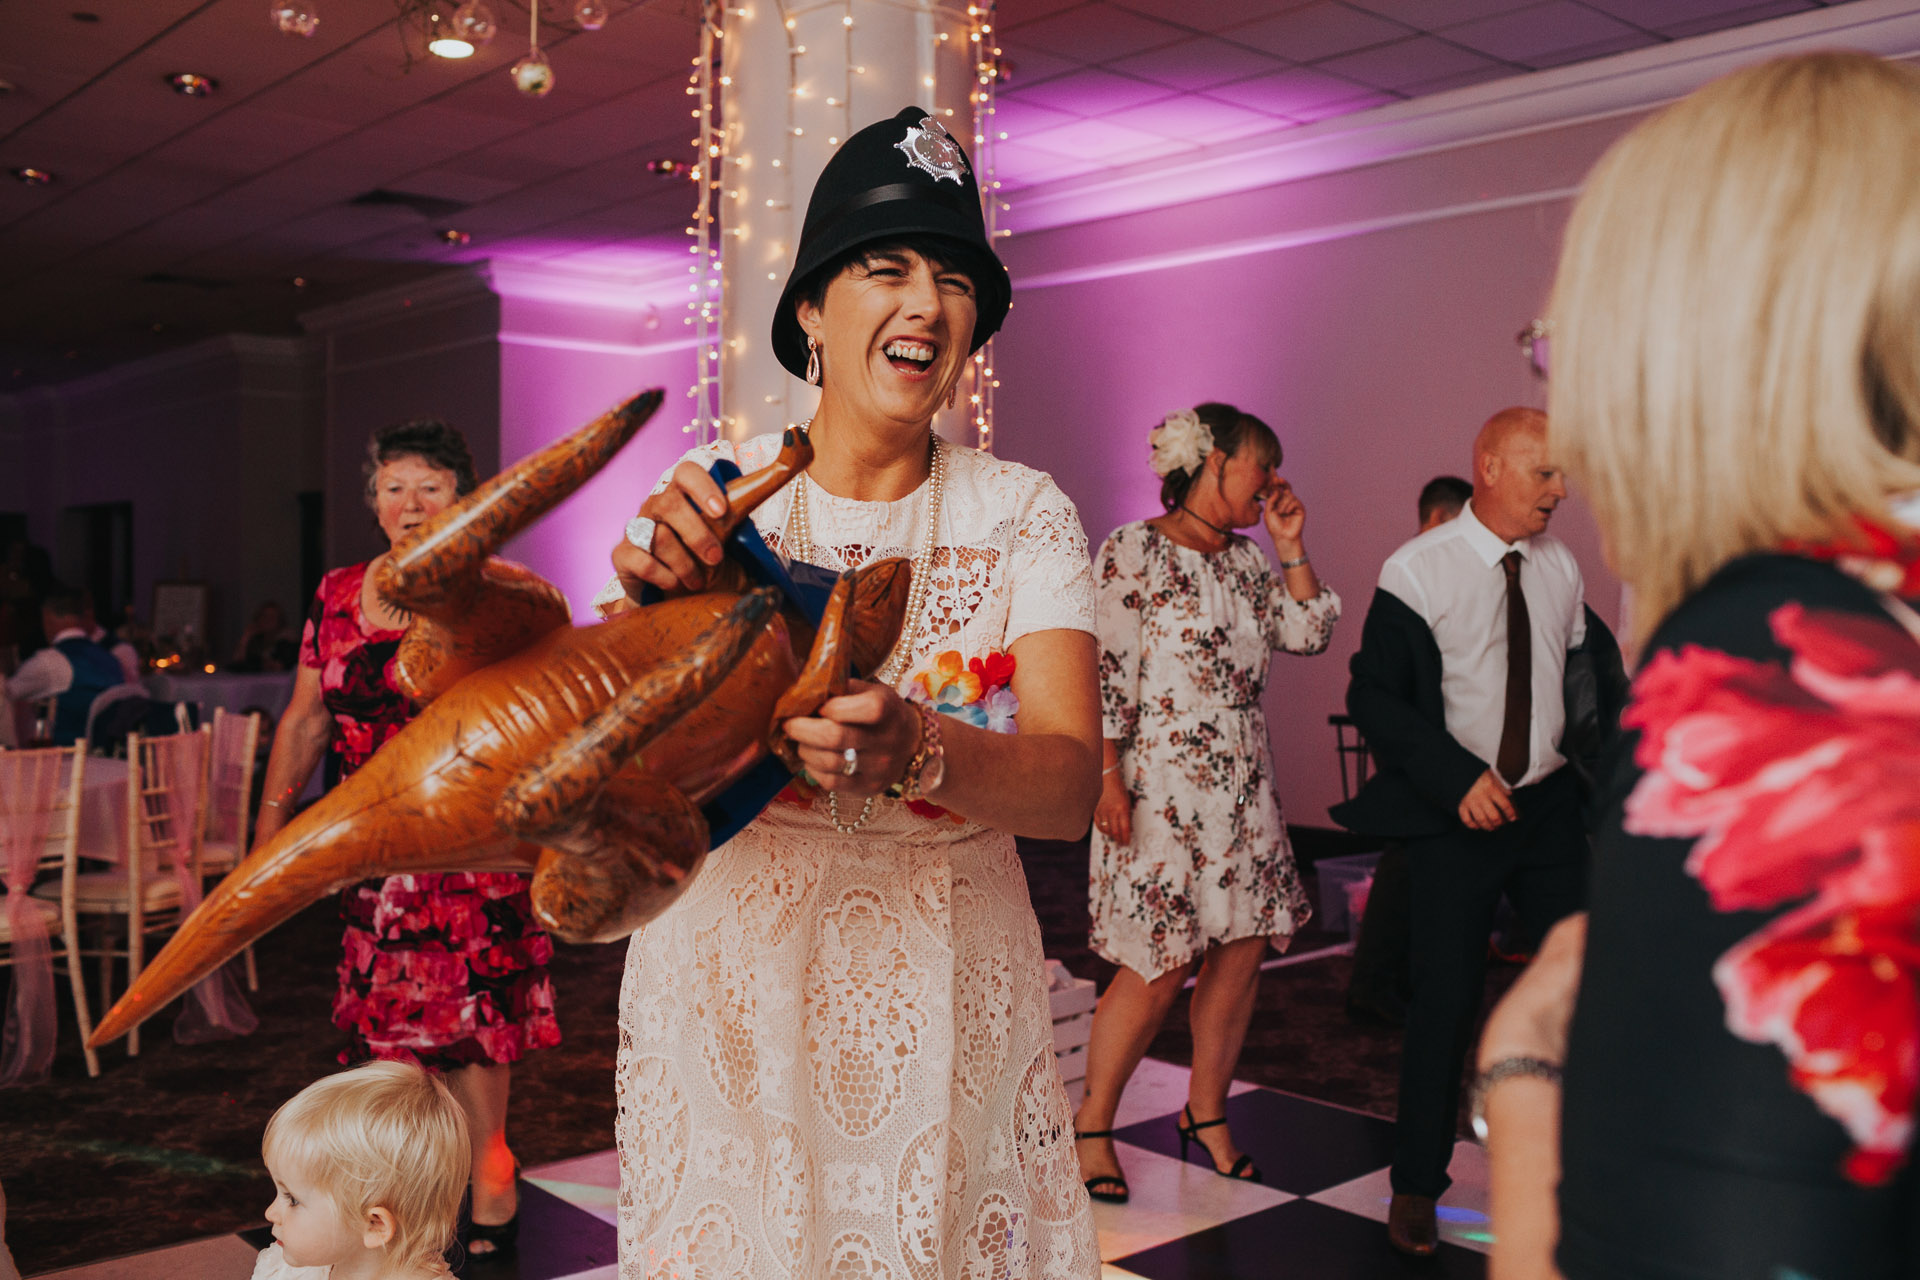 Wedding guest wearing a police helmet and holding a blow up dinosaur at Manchester Wedding.